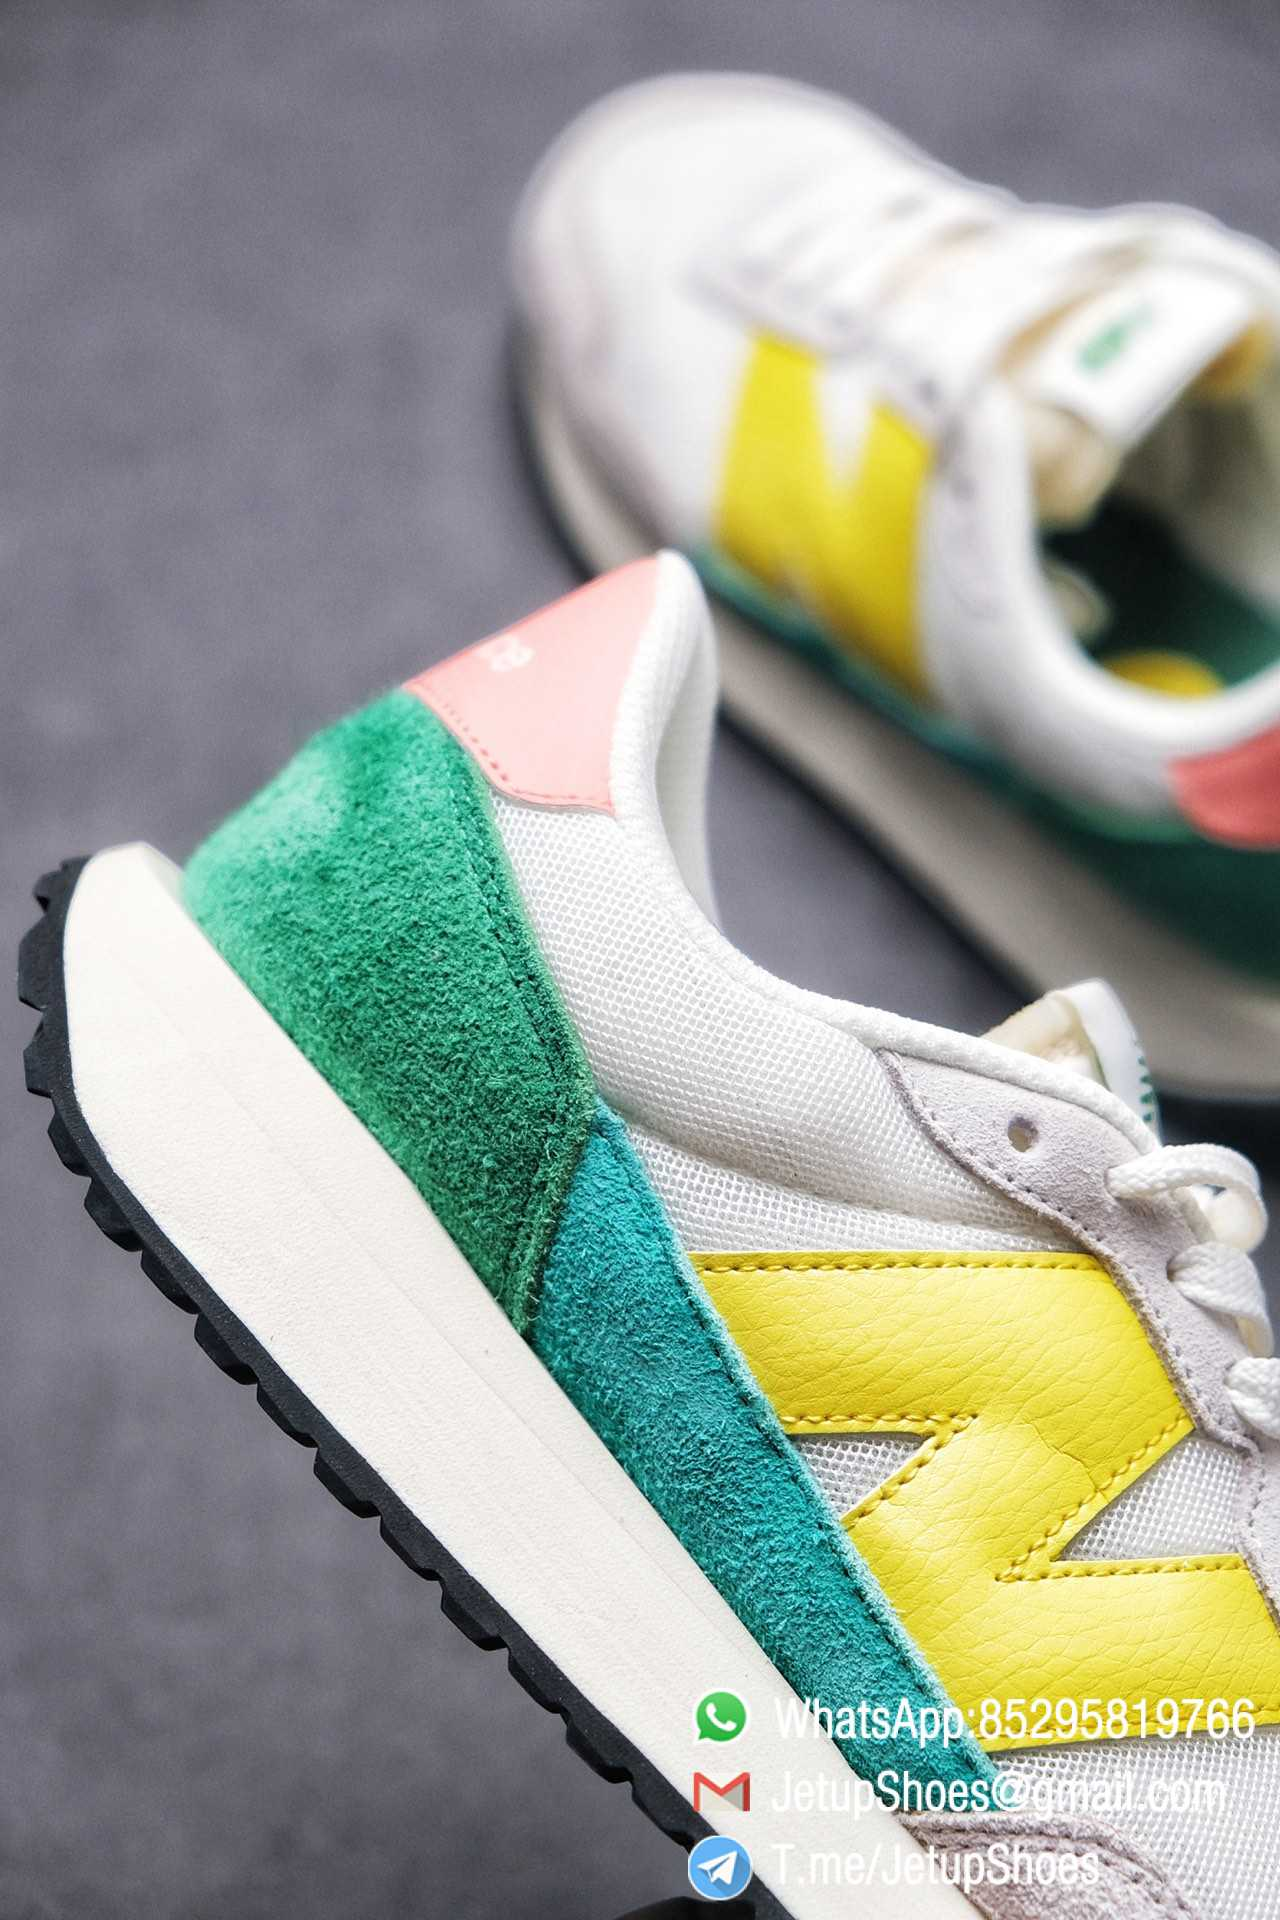 Best Replica New Balance 237 Light Grey Yellow Green Pink Multi Color SKU MS237AS1 High Quality Running Shoes 06